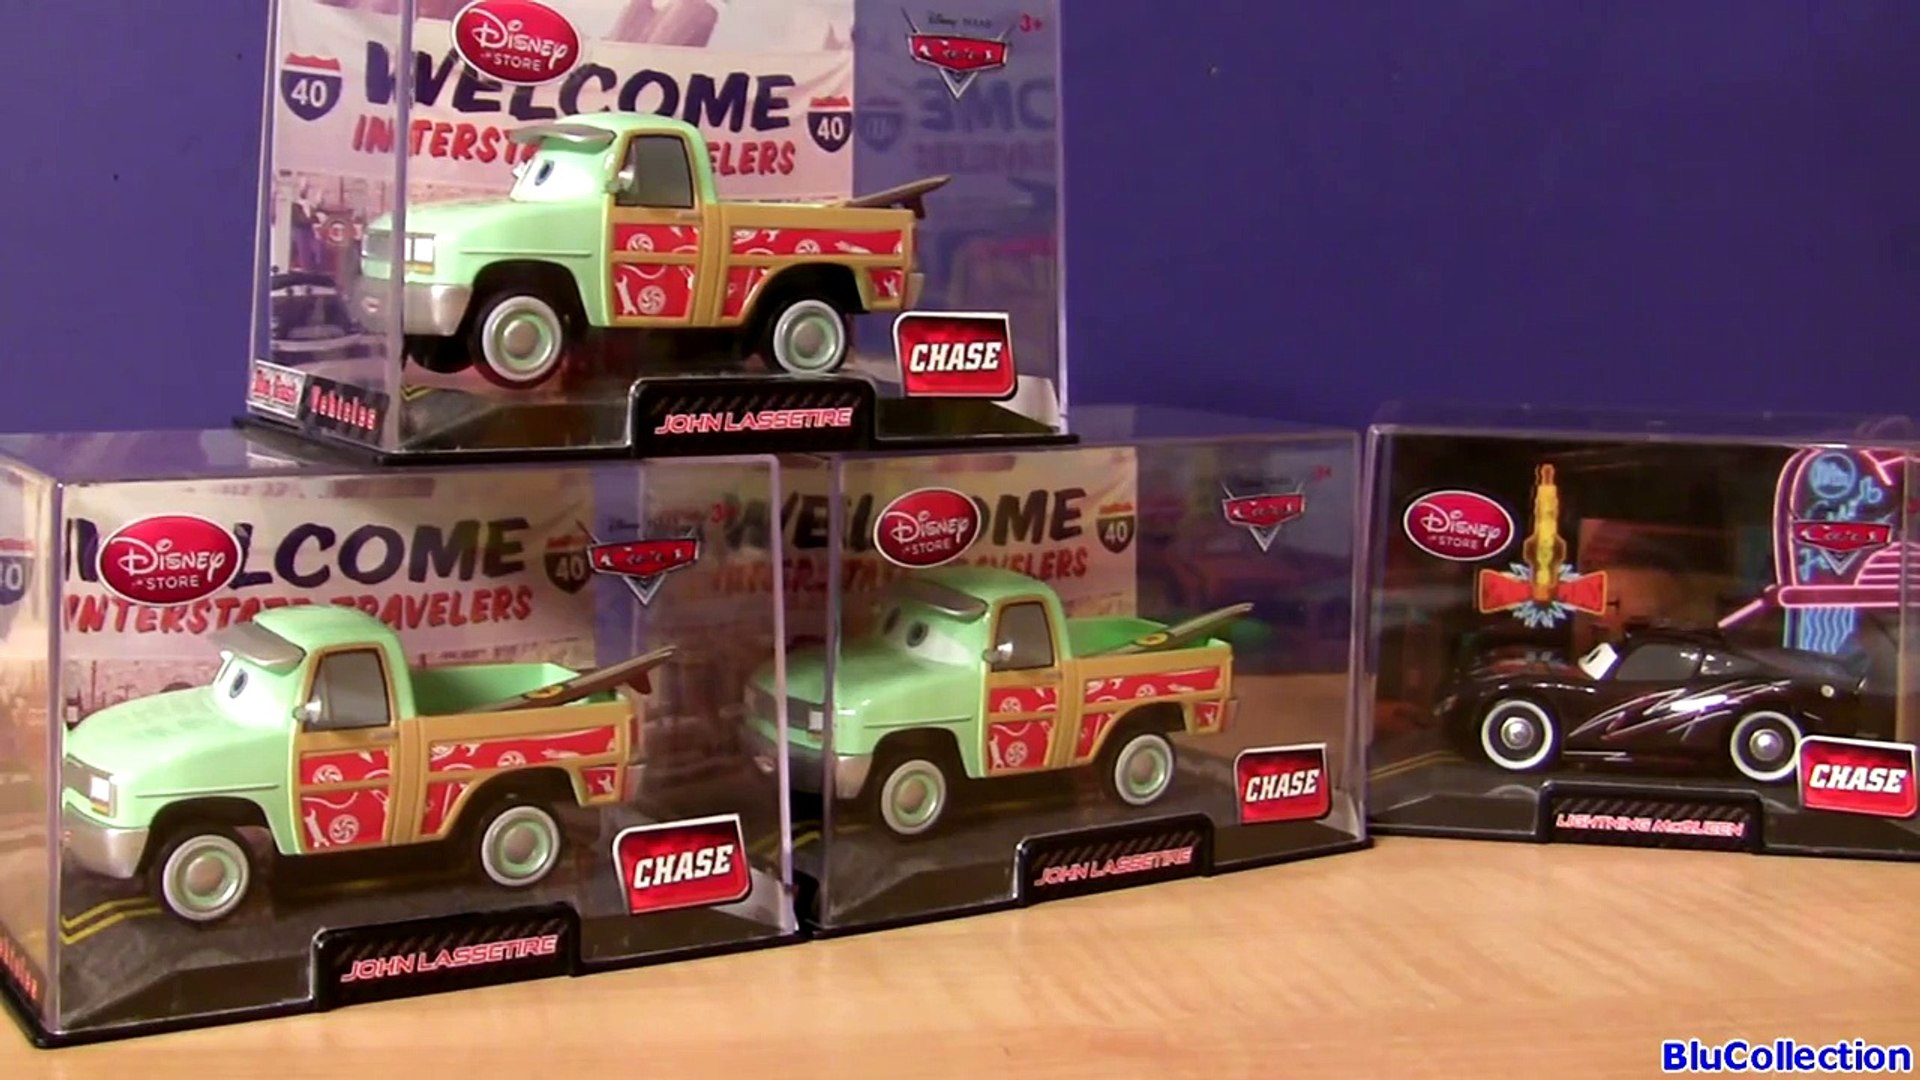 Disney Store Cars Die Cast Collector Case John Lassetire Chase w// Surfboard NEW